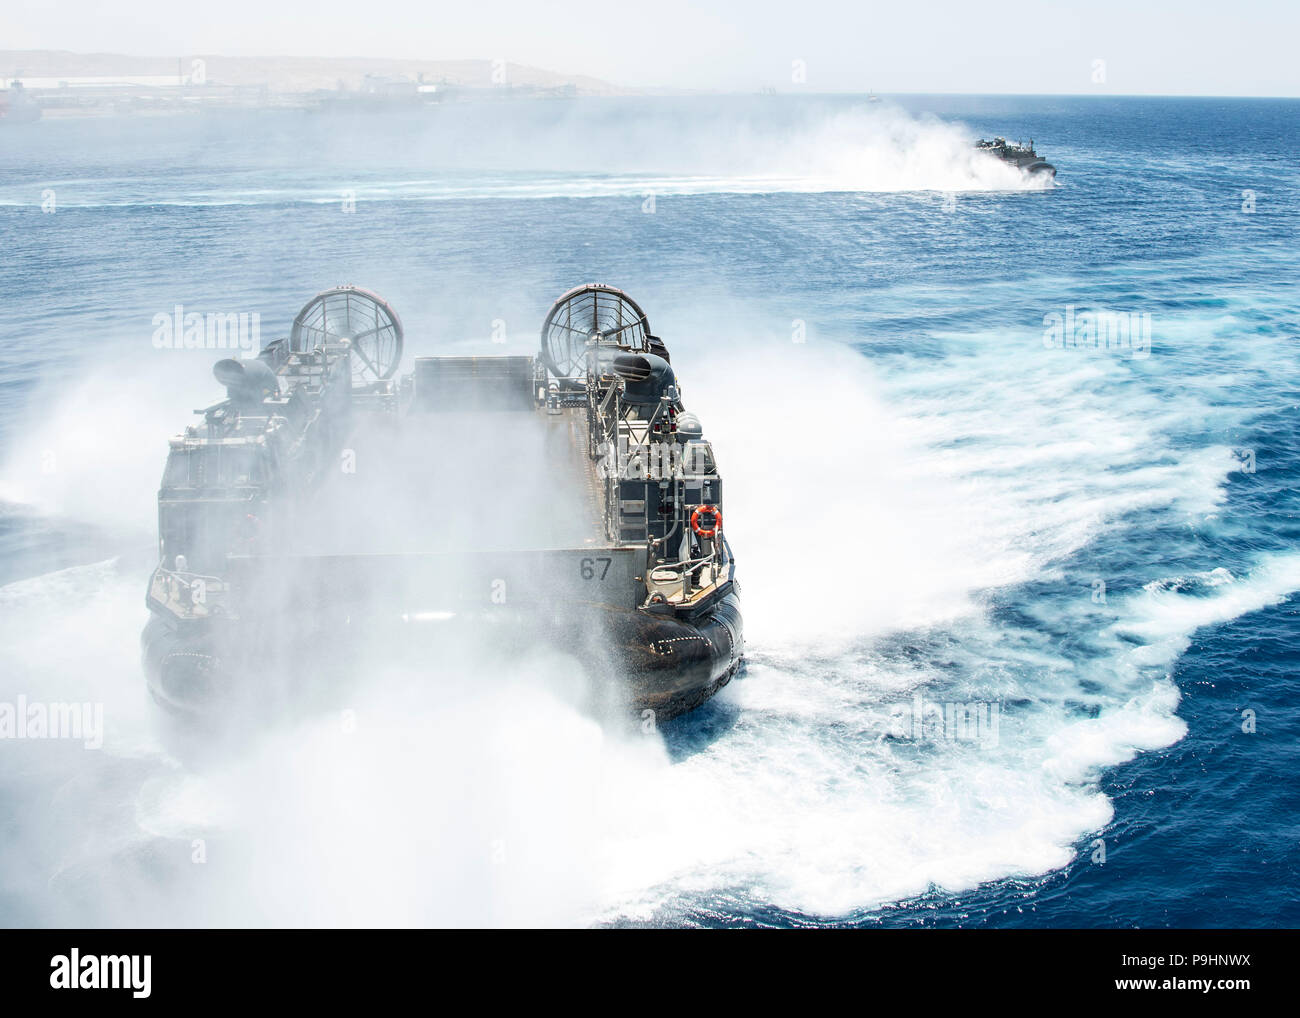 180705-N-ZG607-0195 AQABA, Jordan (July 5, 2018) A landing craft, air cushion, attached to Assault Craft Unit 4, approaches the Wasp-class amphibious assault ship USS Iwo Jima (LHD 7) during amphibious training. Iwo Jima is deployed to the U.S. 5th Fleet area of operations in support of naval operations to ensure maritime stability and security in the central region, connecting the Mediterranean and the Pacific through the western Indian Ocean and three strategic choke points. (U.S. Navy photo by Mass Communication Specialist 3rd Class Dominick A. Cremeans/Released) Stock Photo